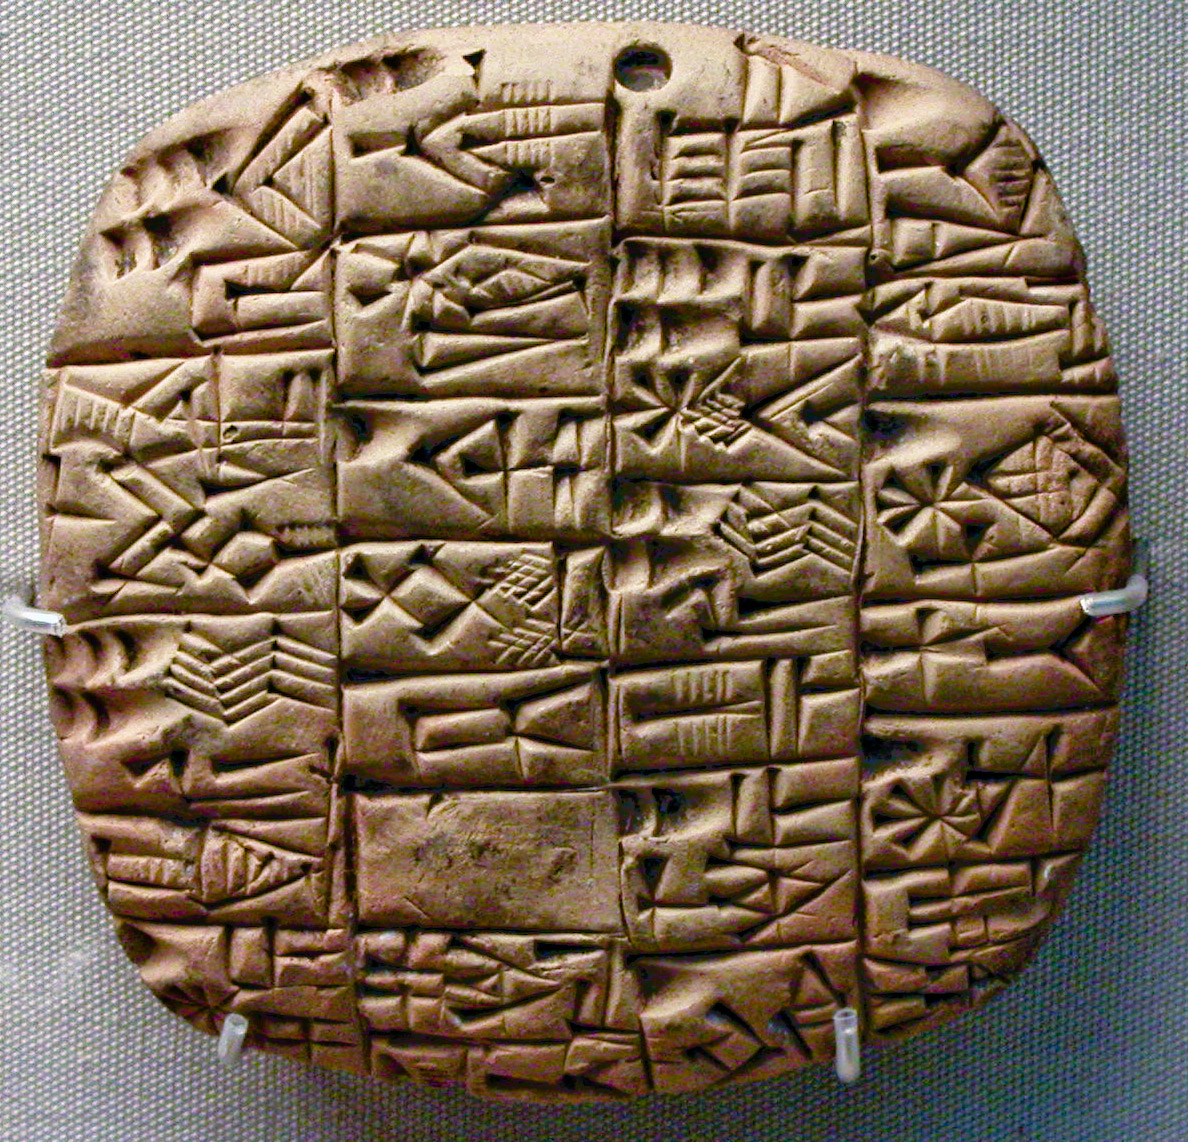 sumerian writing translation «sumerian» sumerian may refer to: sumer, an ancient civilization sumerian language, their language sumerian art sumerian architecture cuneiform.